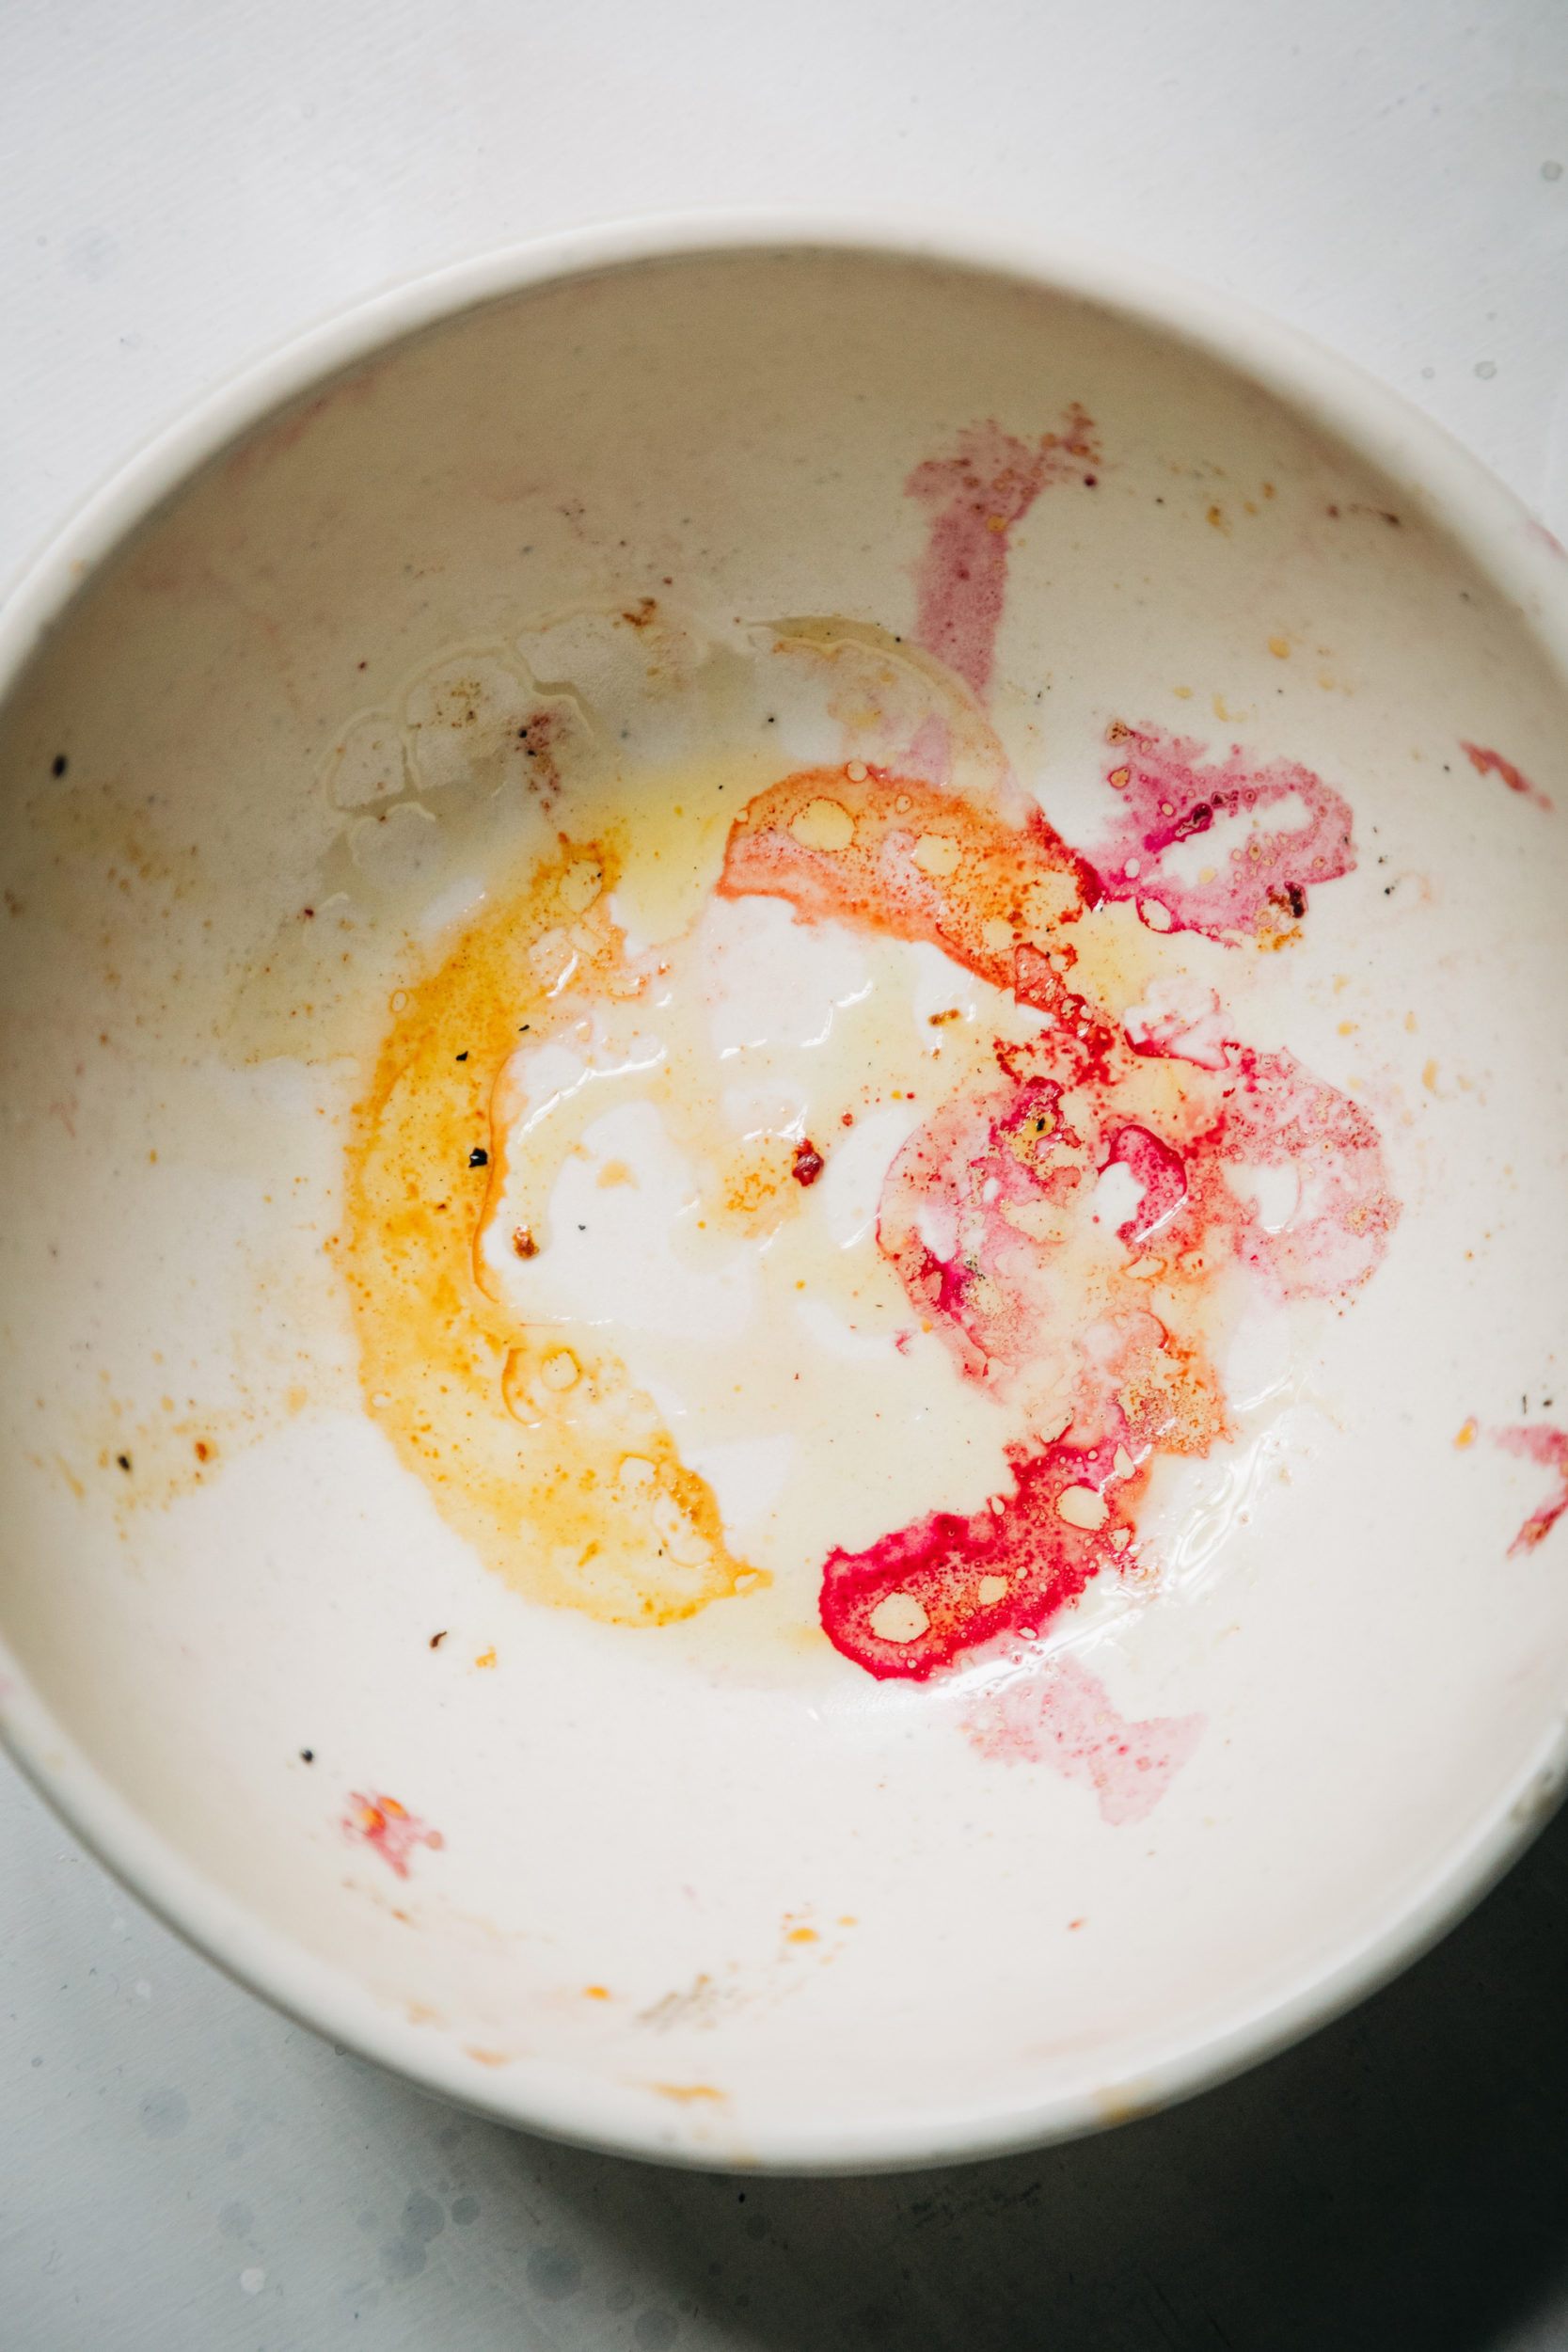 An overhead shot of pink and yellow beet stains in the bottom of a white bowl.